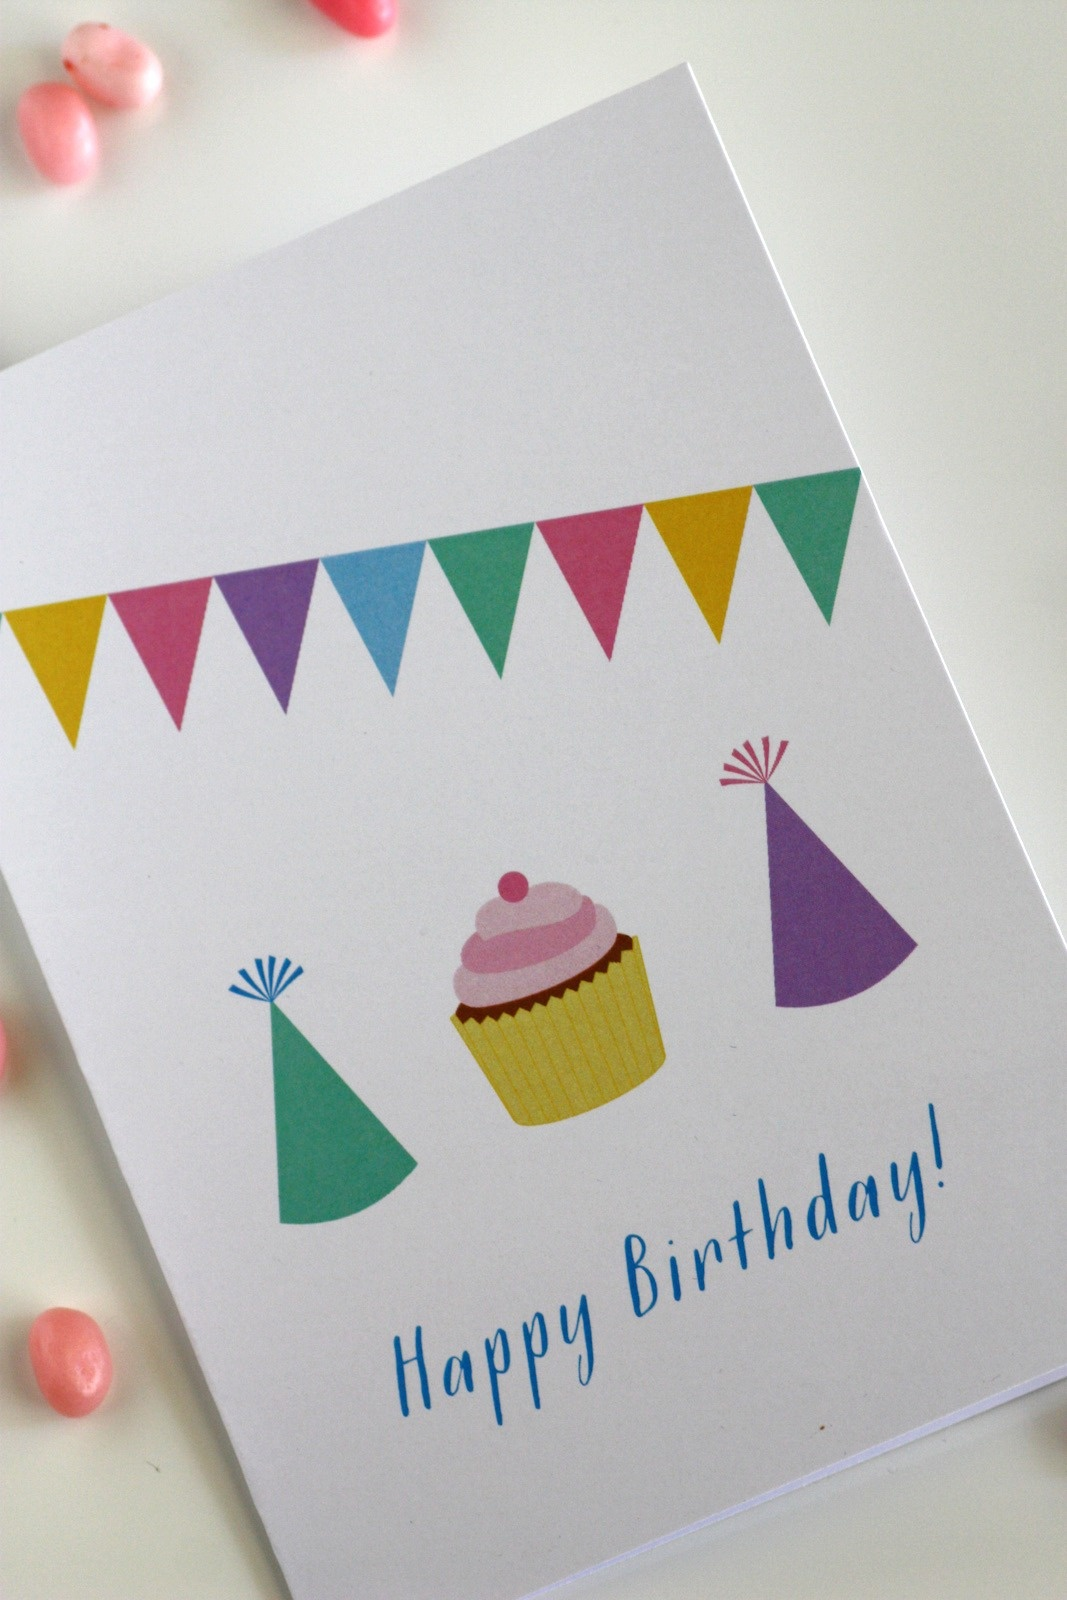 Free Printable Blank Birthday Cards | Catch My Party - Free Printable Birthday Cards For Kids